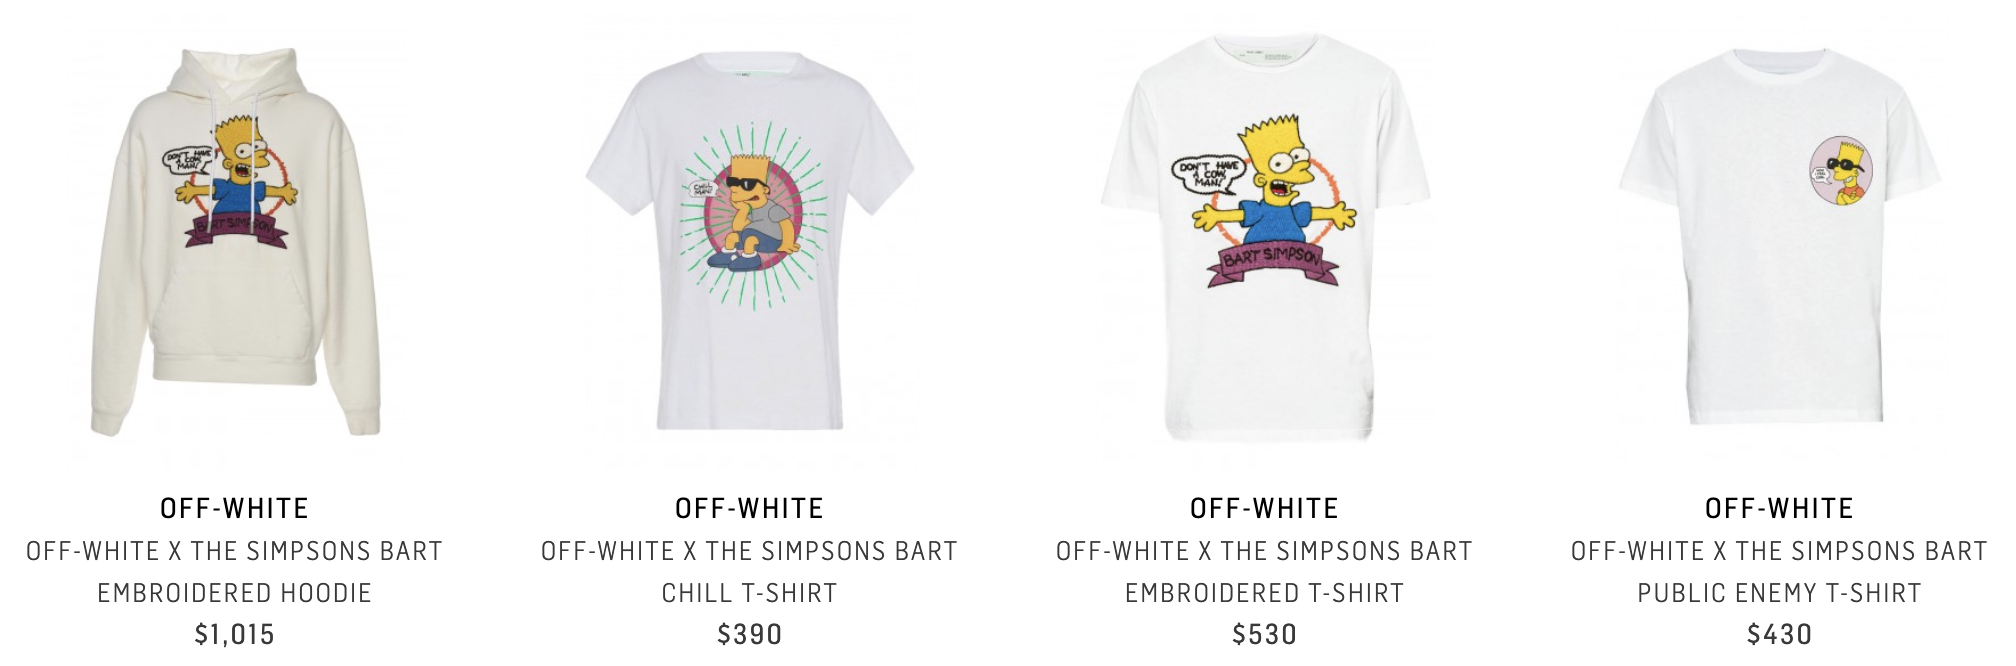 OFF-WHITE × THE SIMPSONS